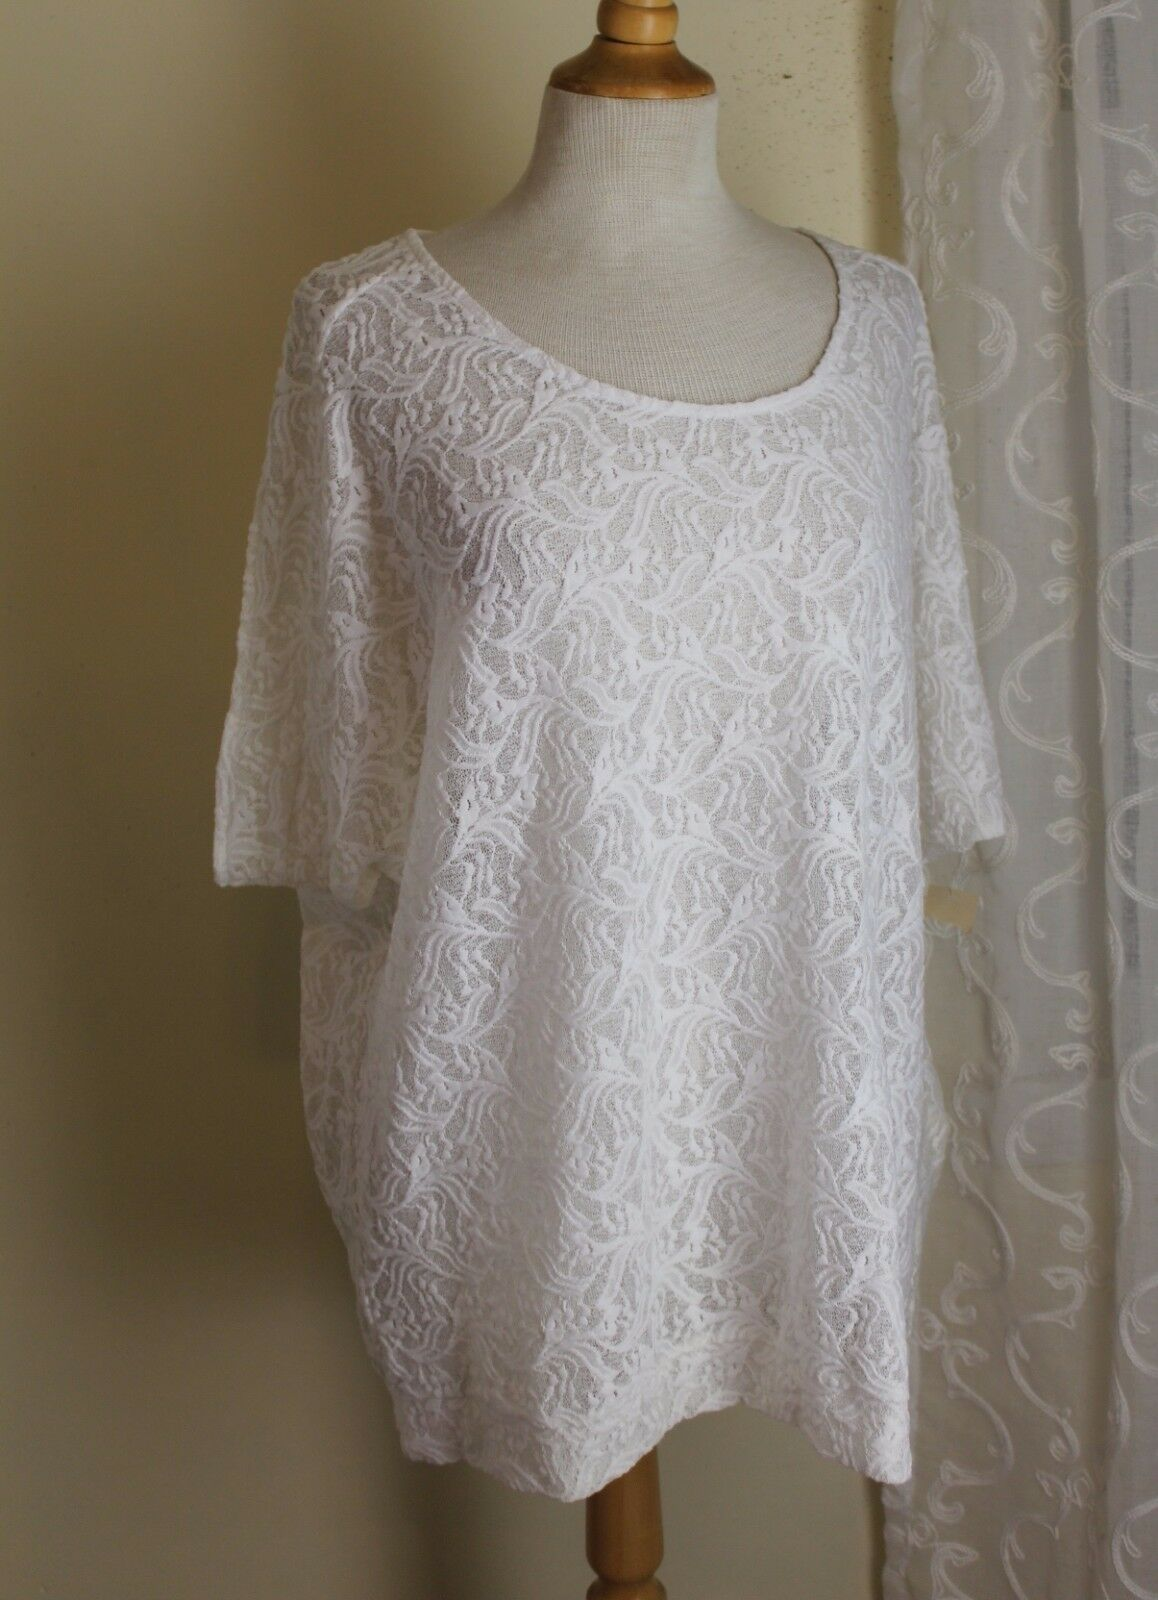 NWT Coldwater Creek -Sz 1X Soft Weiß Romantic Lace Floral Long Tunic Knit Top